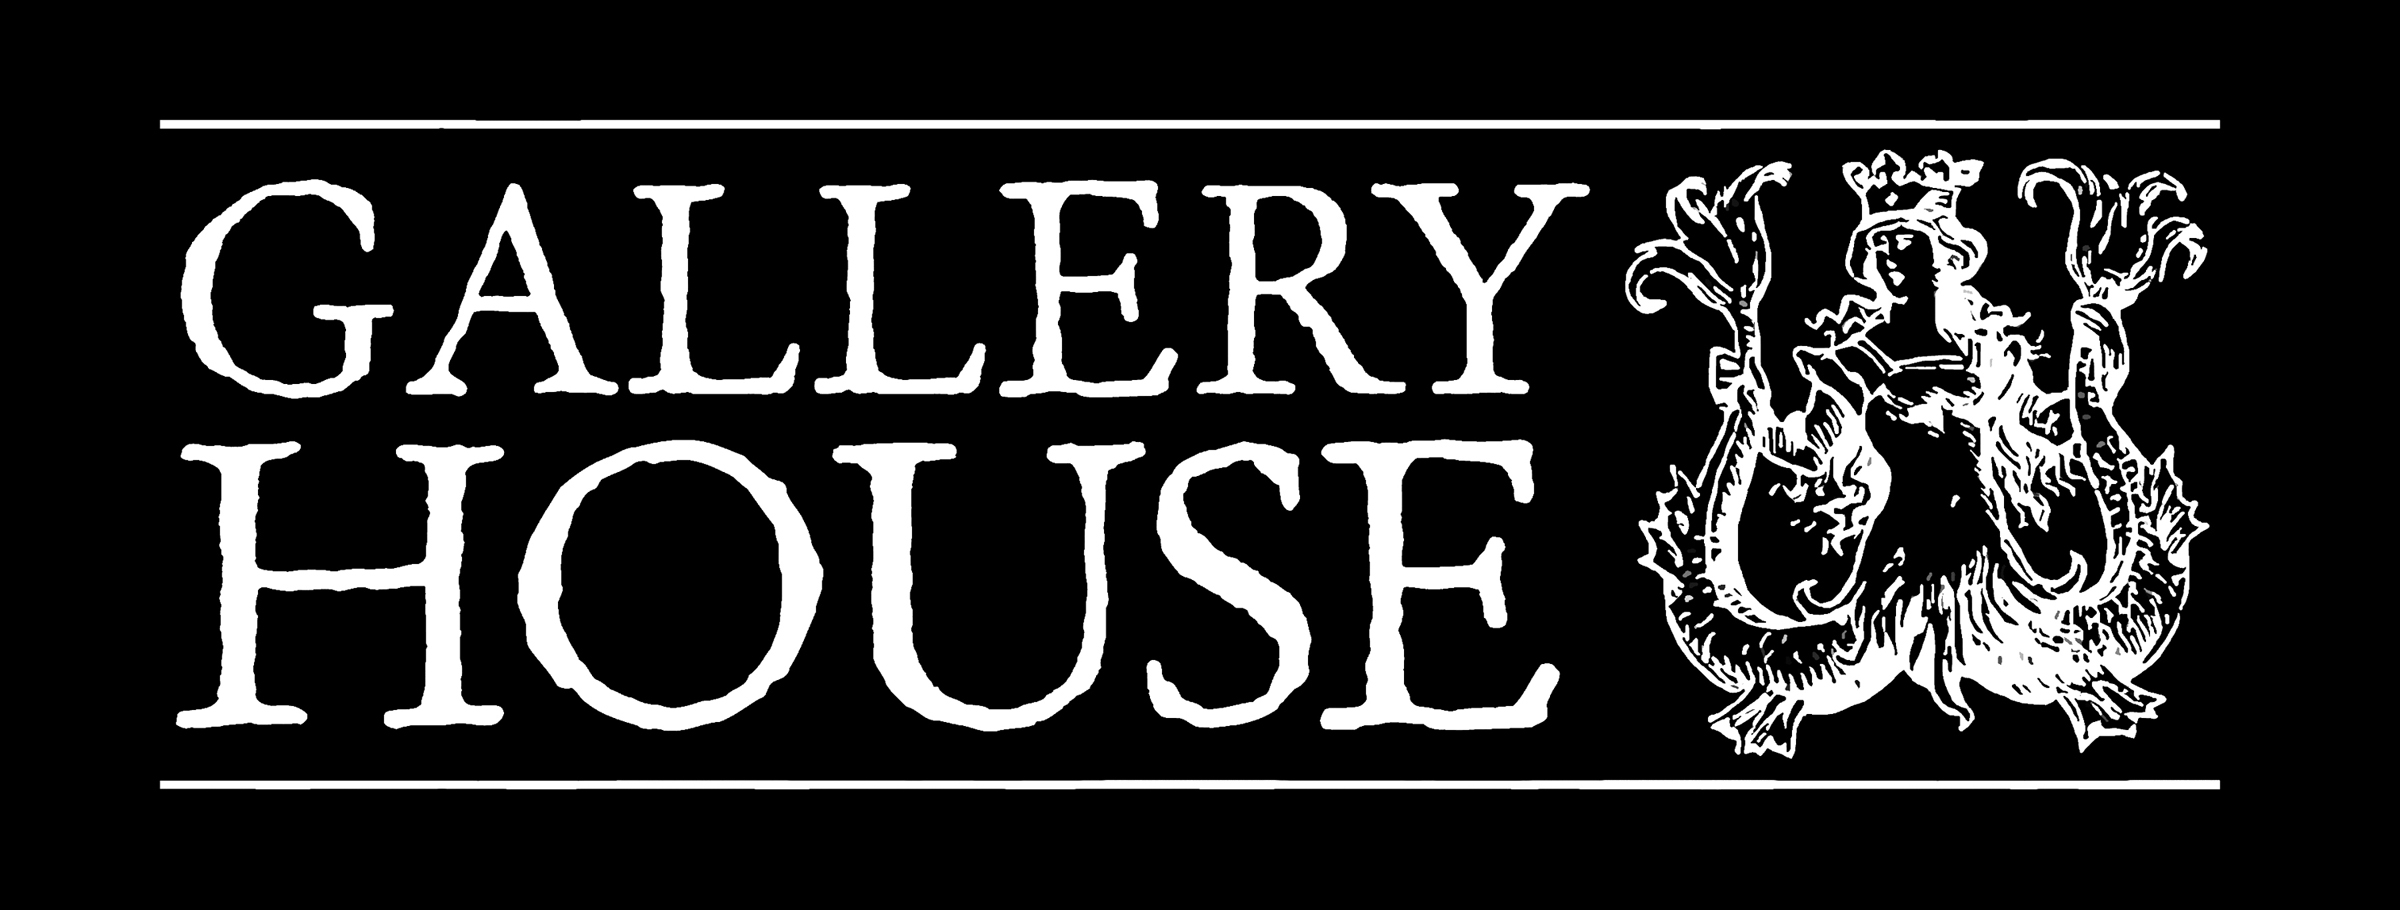 Gallery House